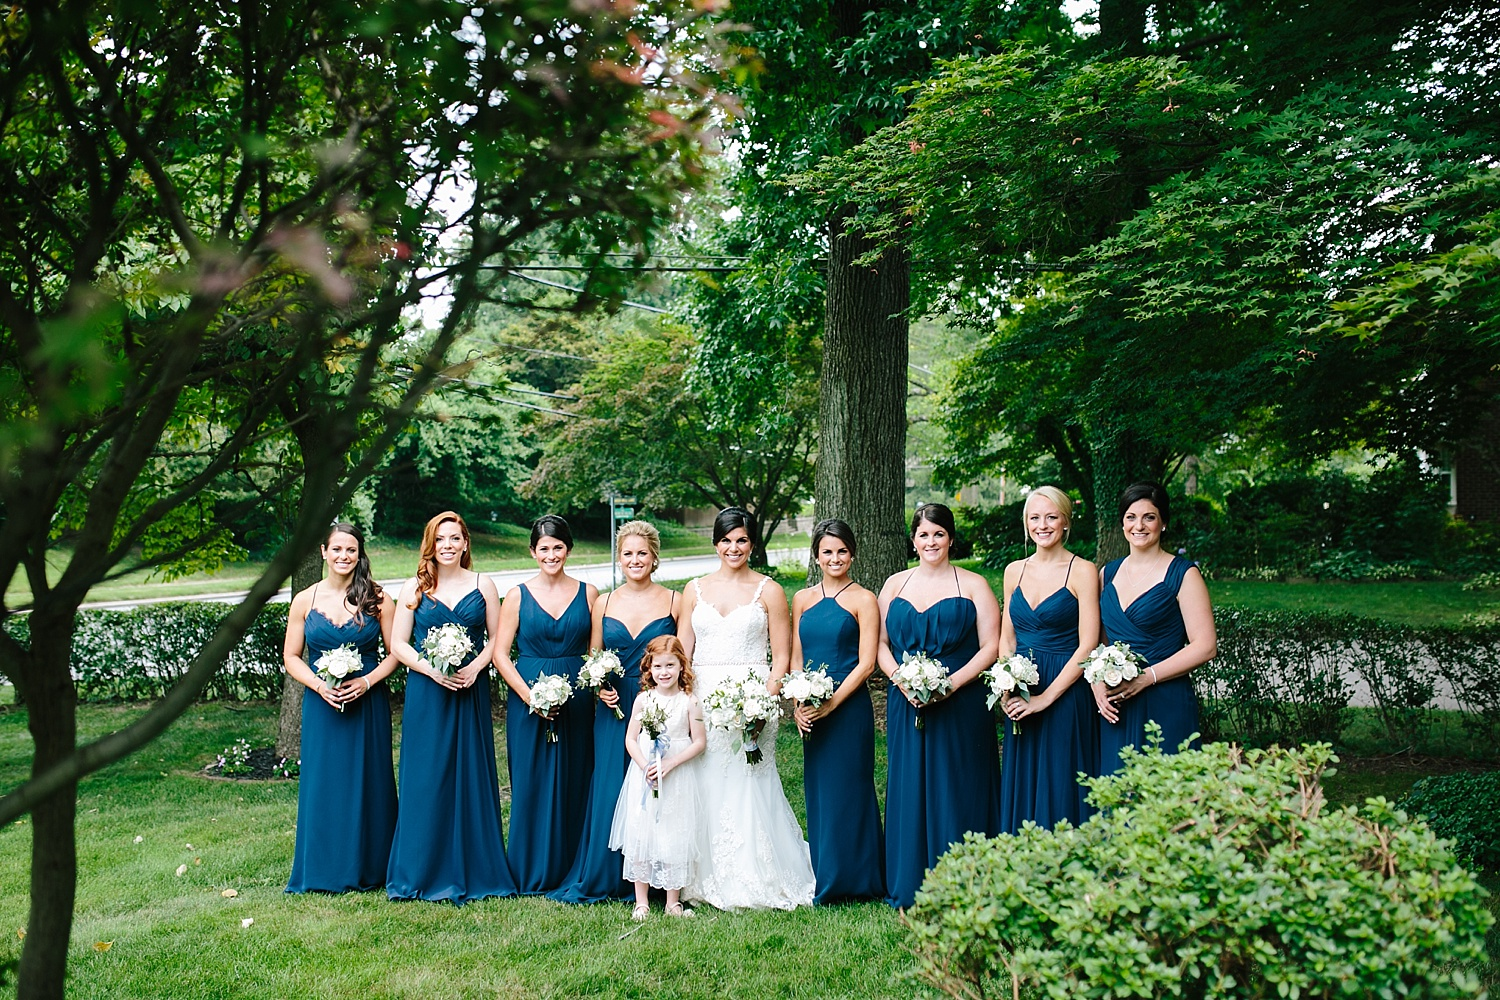 emilyandjoe_bluebell_countryclub_philadelphia_wedding_image037.jpg